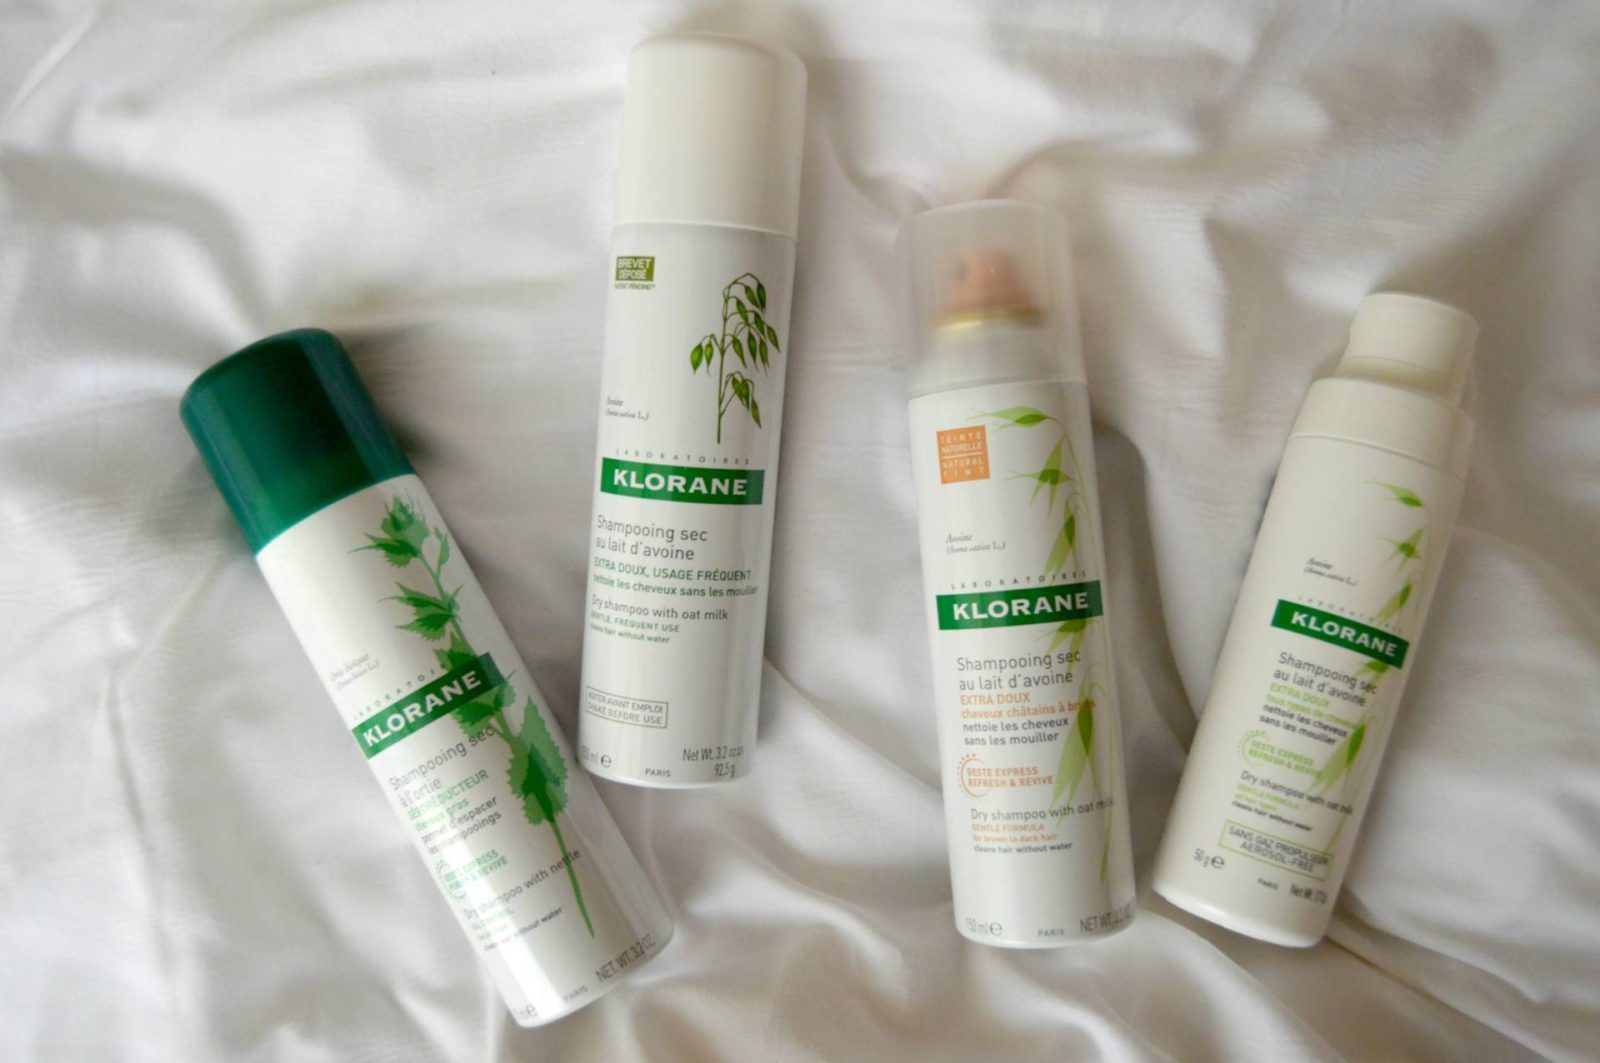 National Dry Shampoo Day Klorane Giveaway!